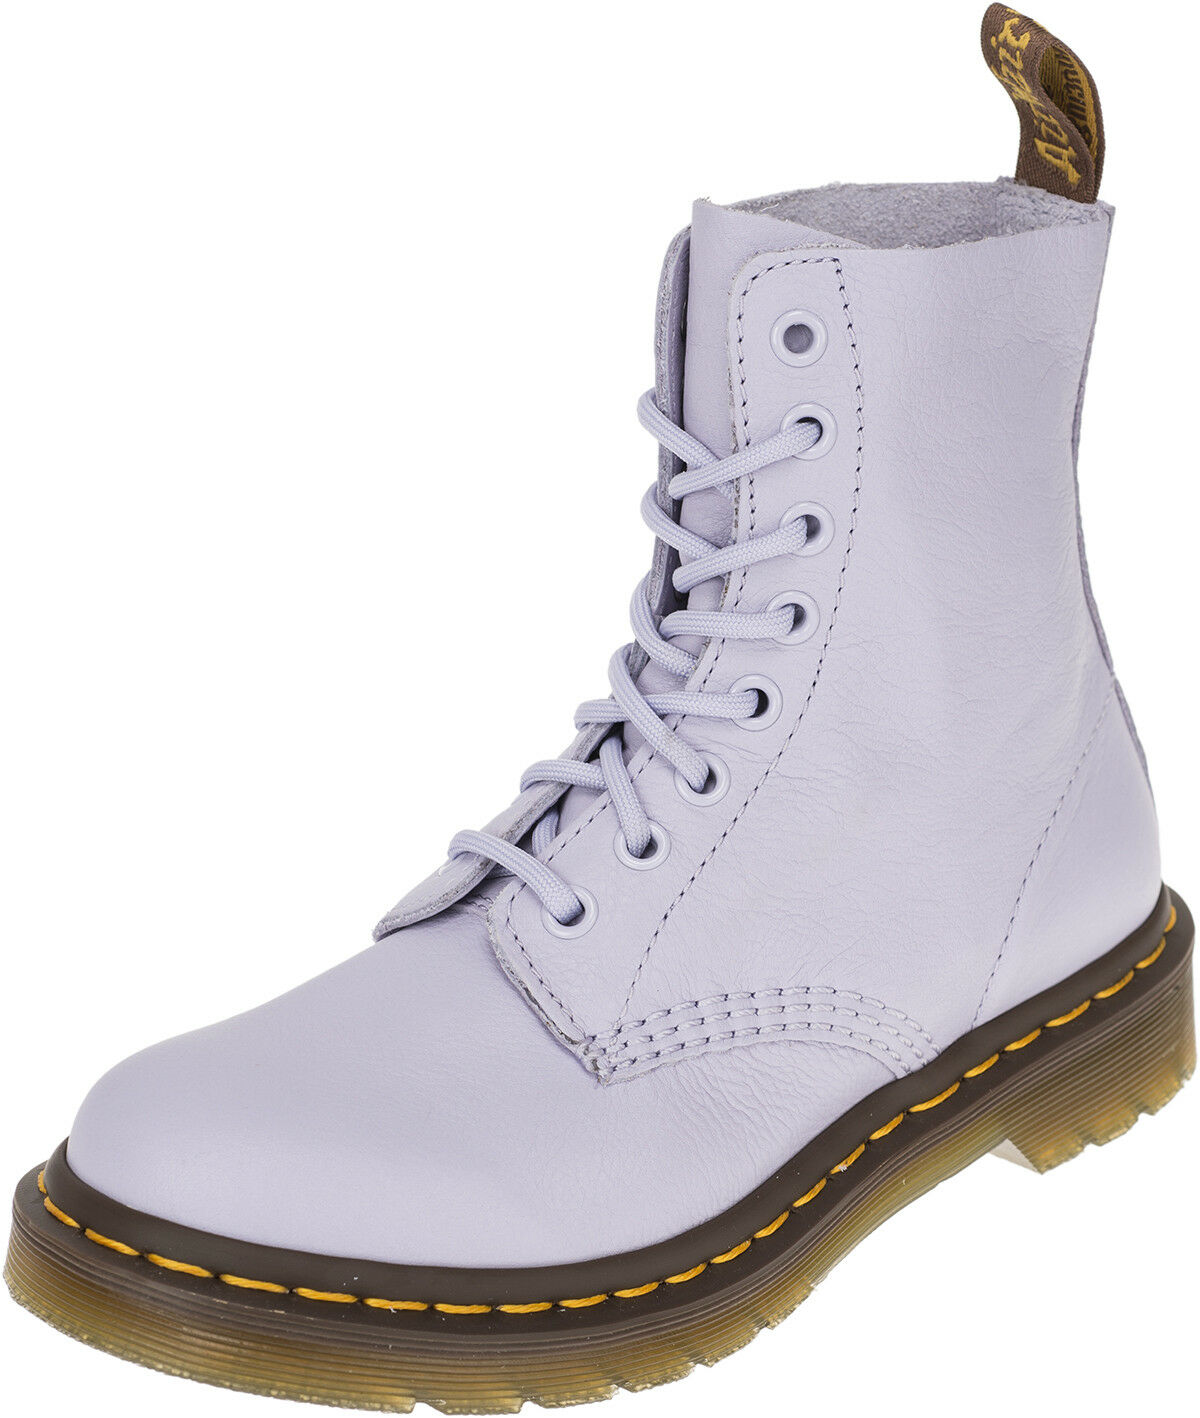 Dr. Martens pascal 8-eye Purple Heather botas botas zapatos rockabilly